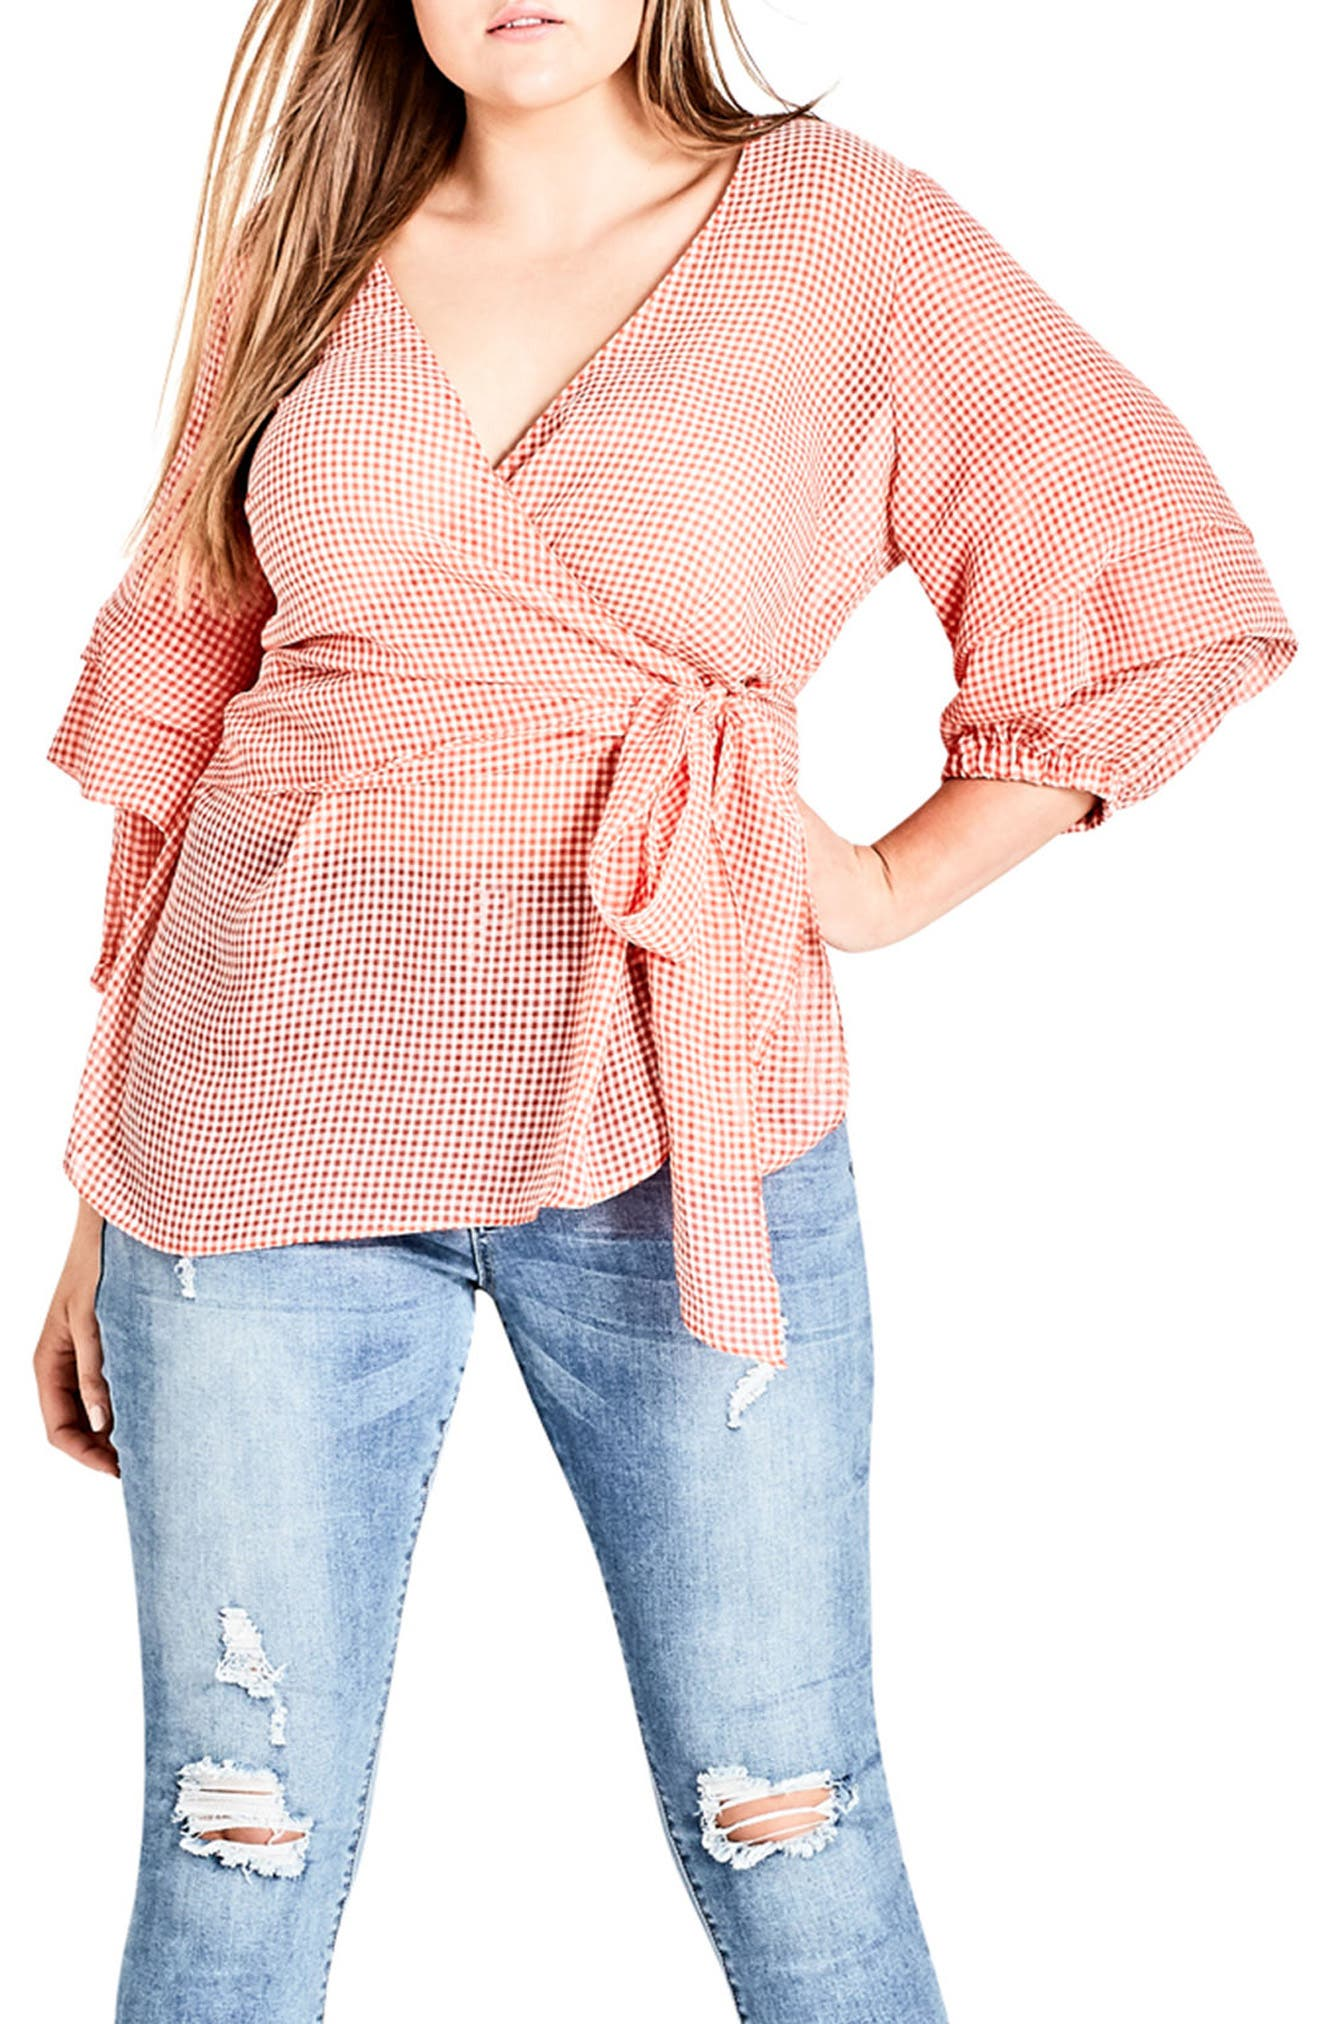 Main Image - City Chic My Desire Check Print Wrap Top (Plus Size)